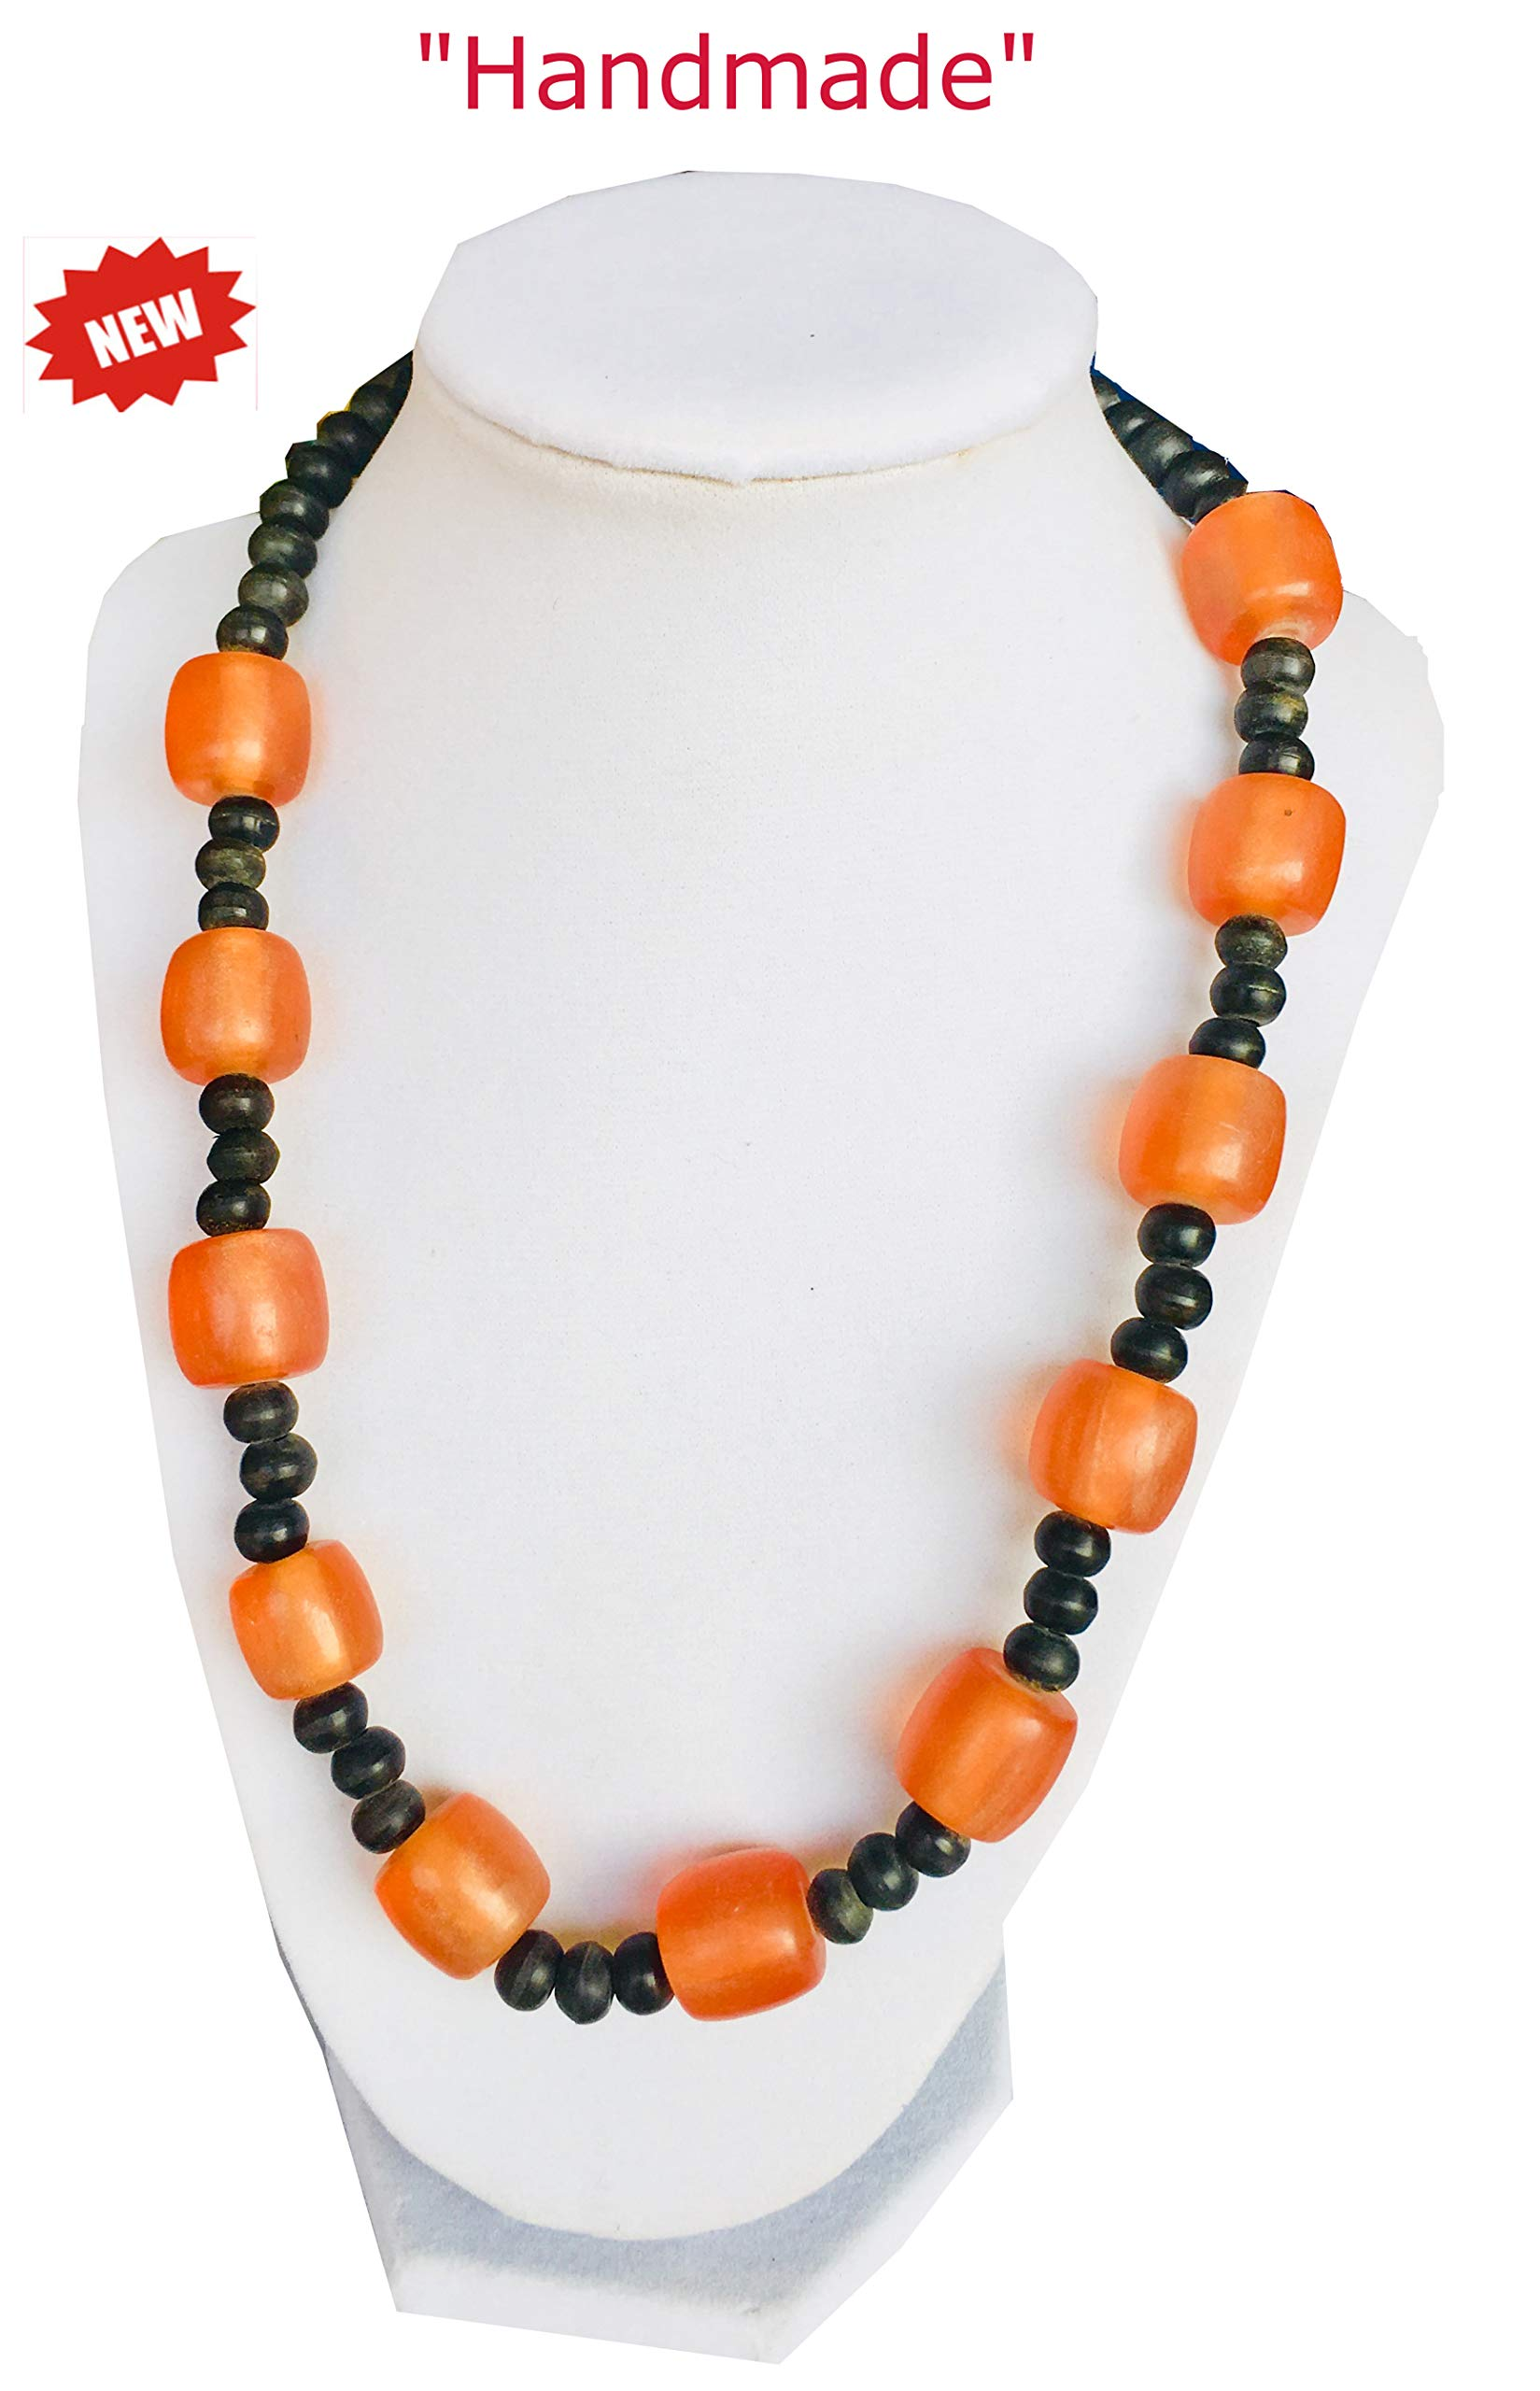 Himalayan Handicraft Multi Corals Necklace with Small Beads - Comes with Gift Box